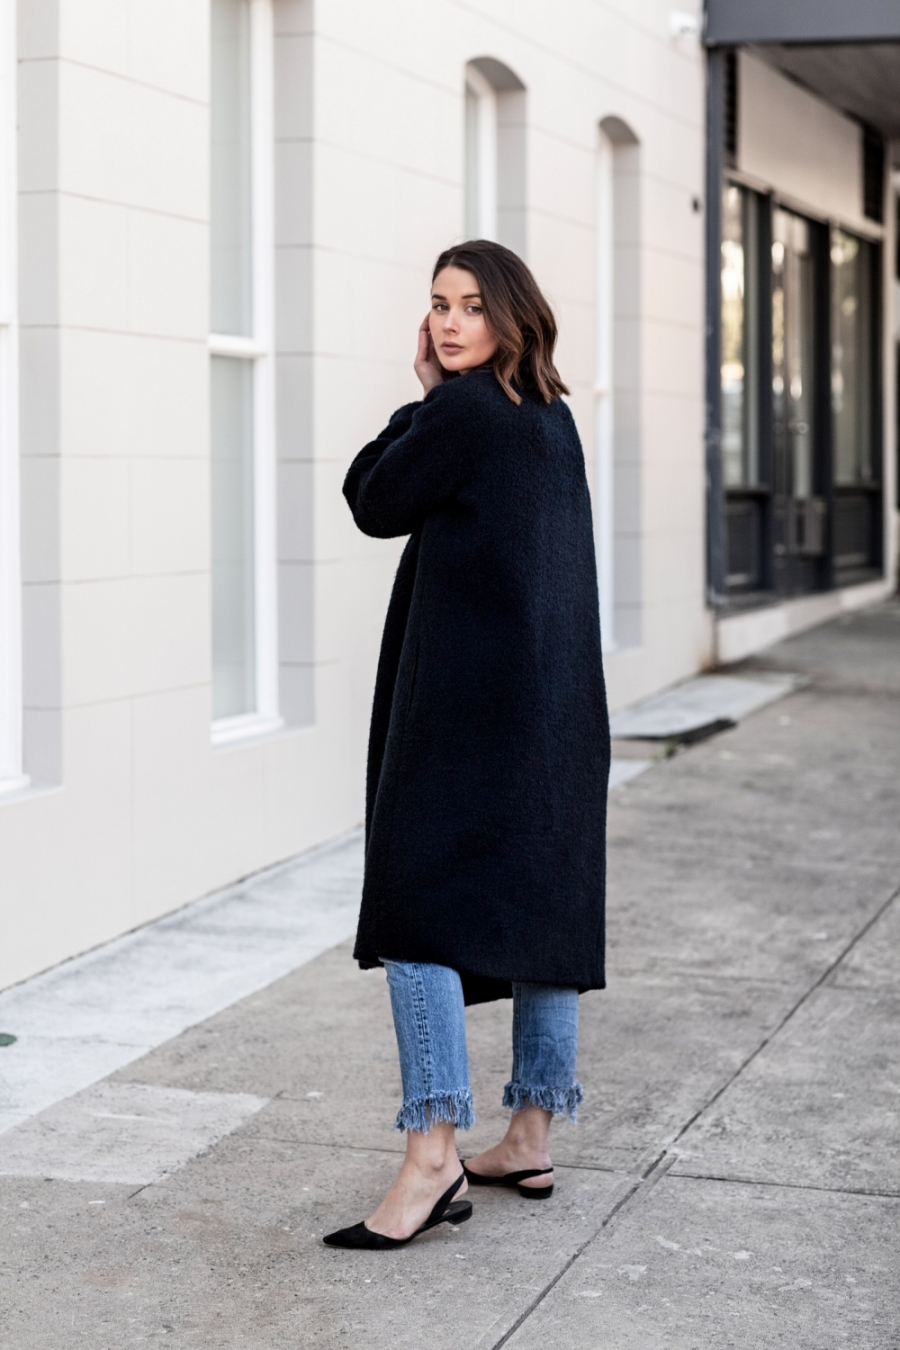 harper-and-harley_keeping-outfit-tonal_navy_denim_outfit_style_2-muypvv30u0aymamlaux7rpyf2gjrxh77giwzss65ks